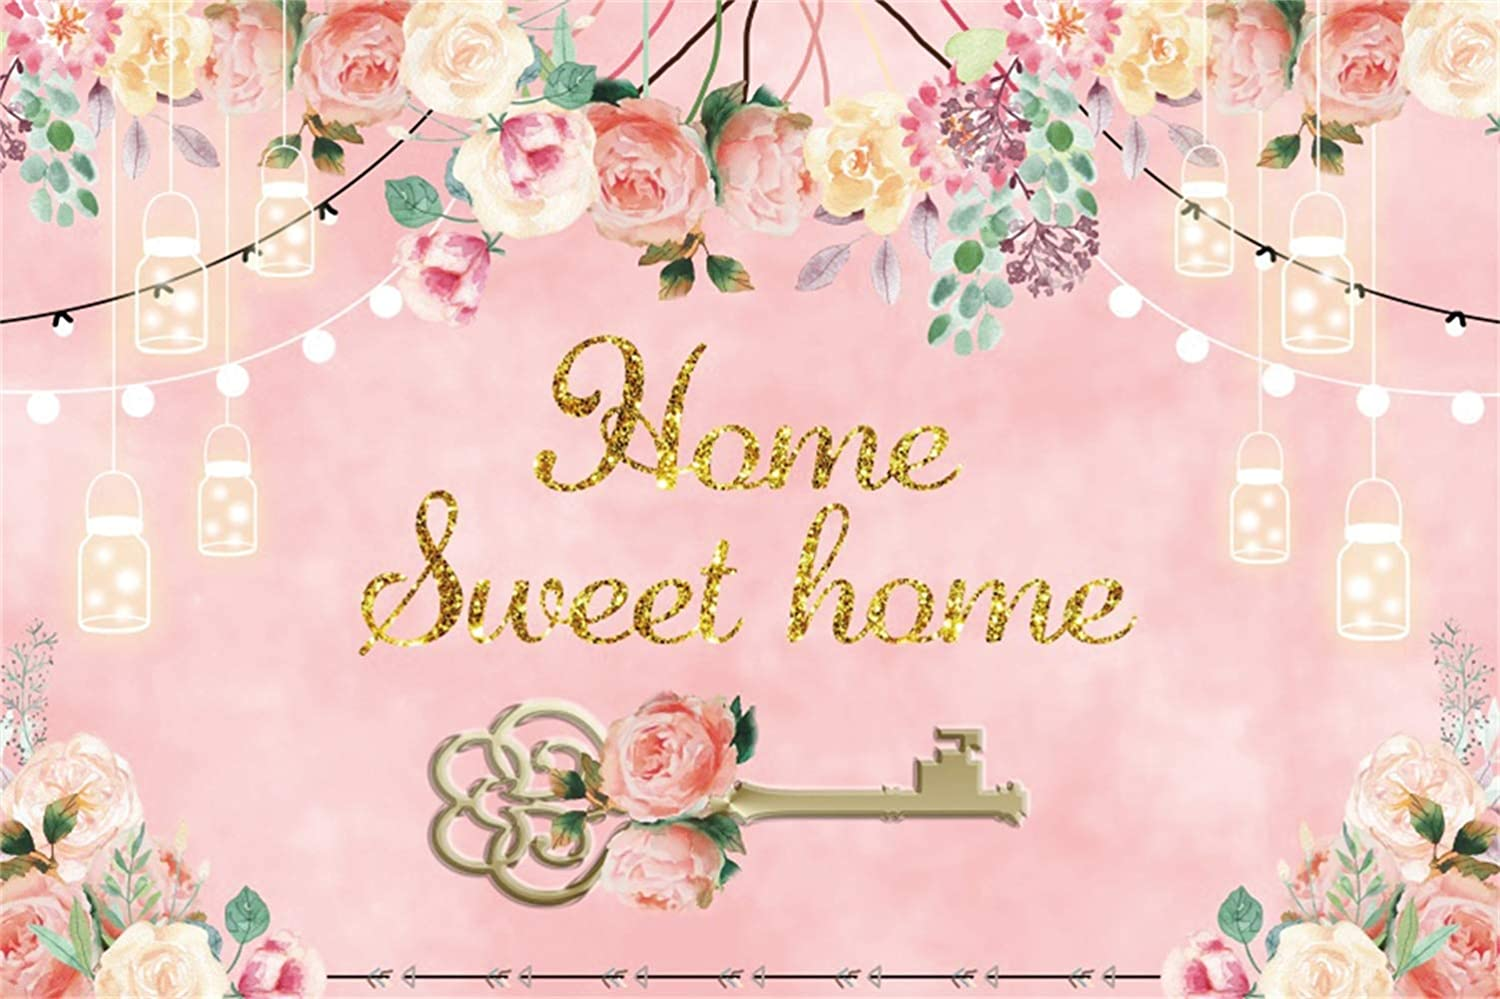 Leowefowa 9x6ft Home Sweet Home Backdrop Vinyl Sweety Pink Tone Bridal Shower Housewarming Party Photography Background Key Flowers Party Banner Light Decors Studio Photo Props